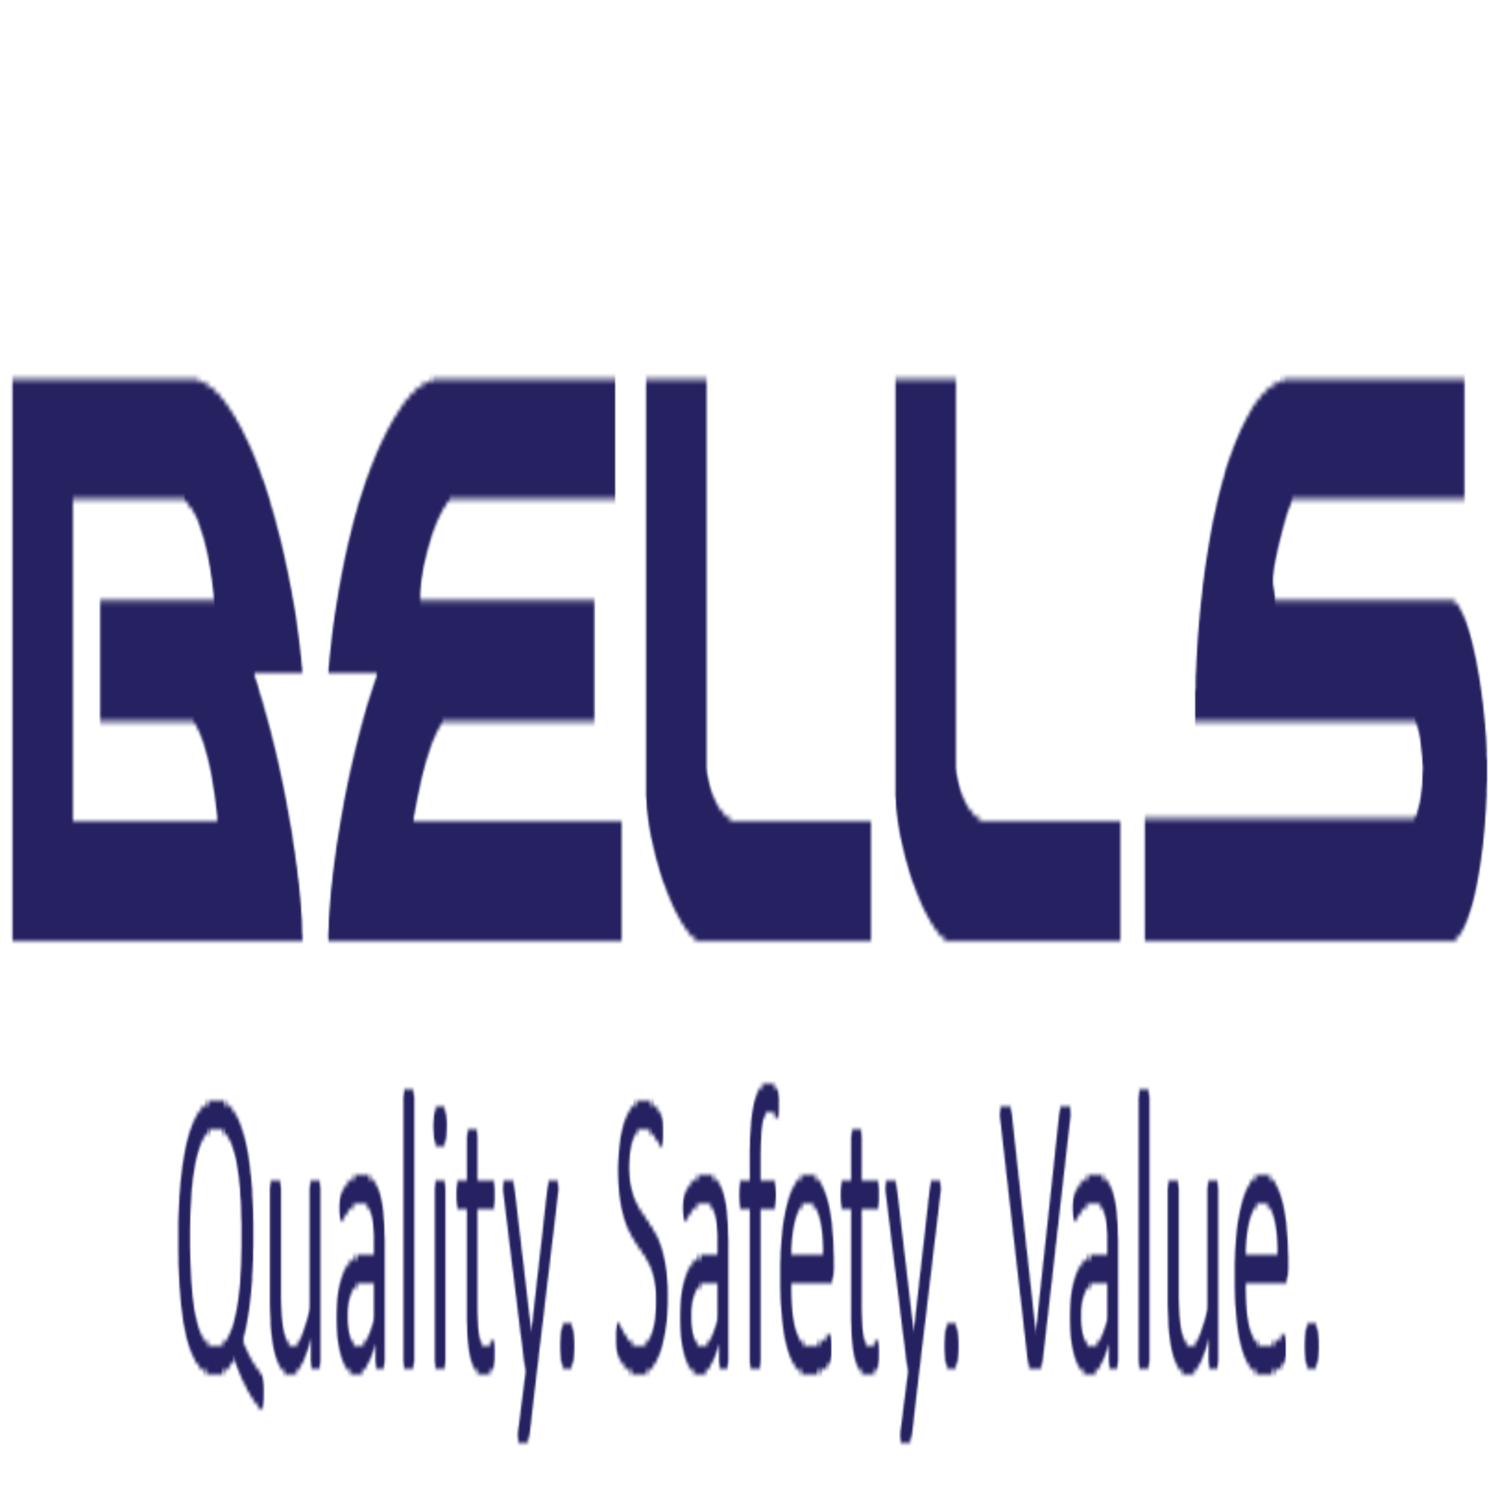 BELLS PROPERTY SERVICES PTY LTD